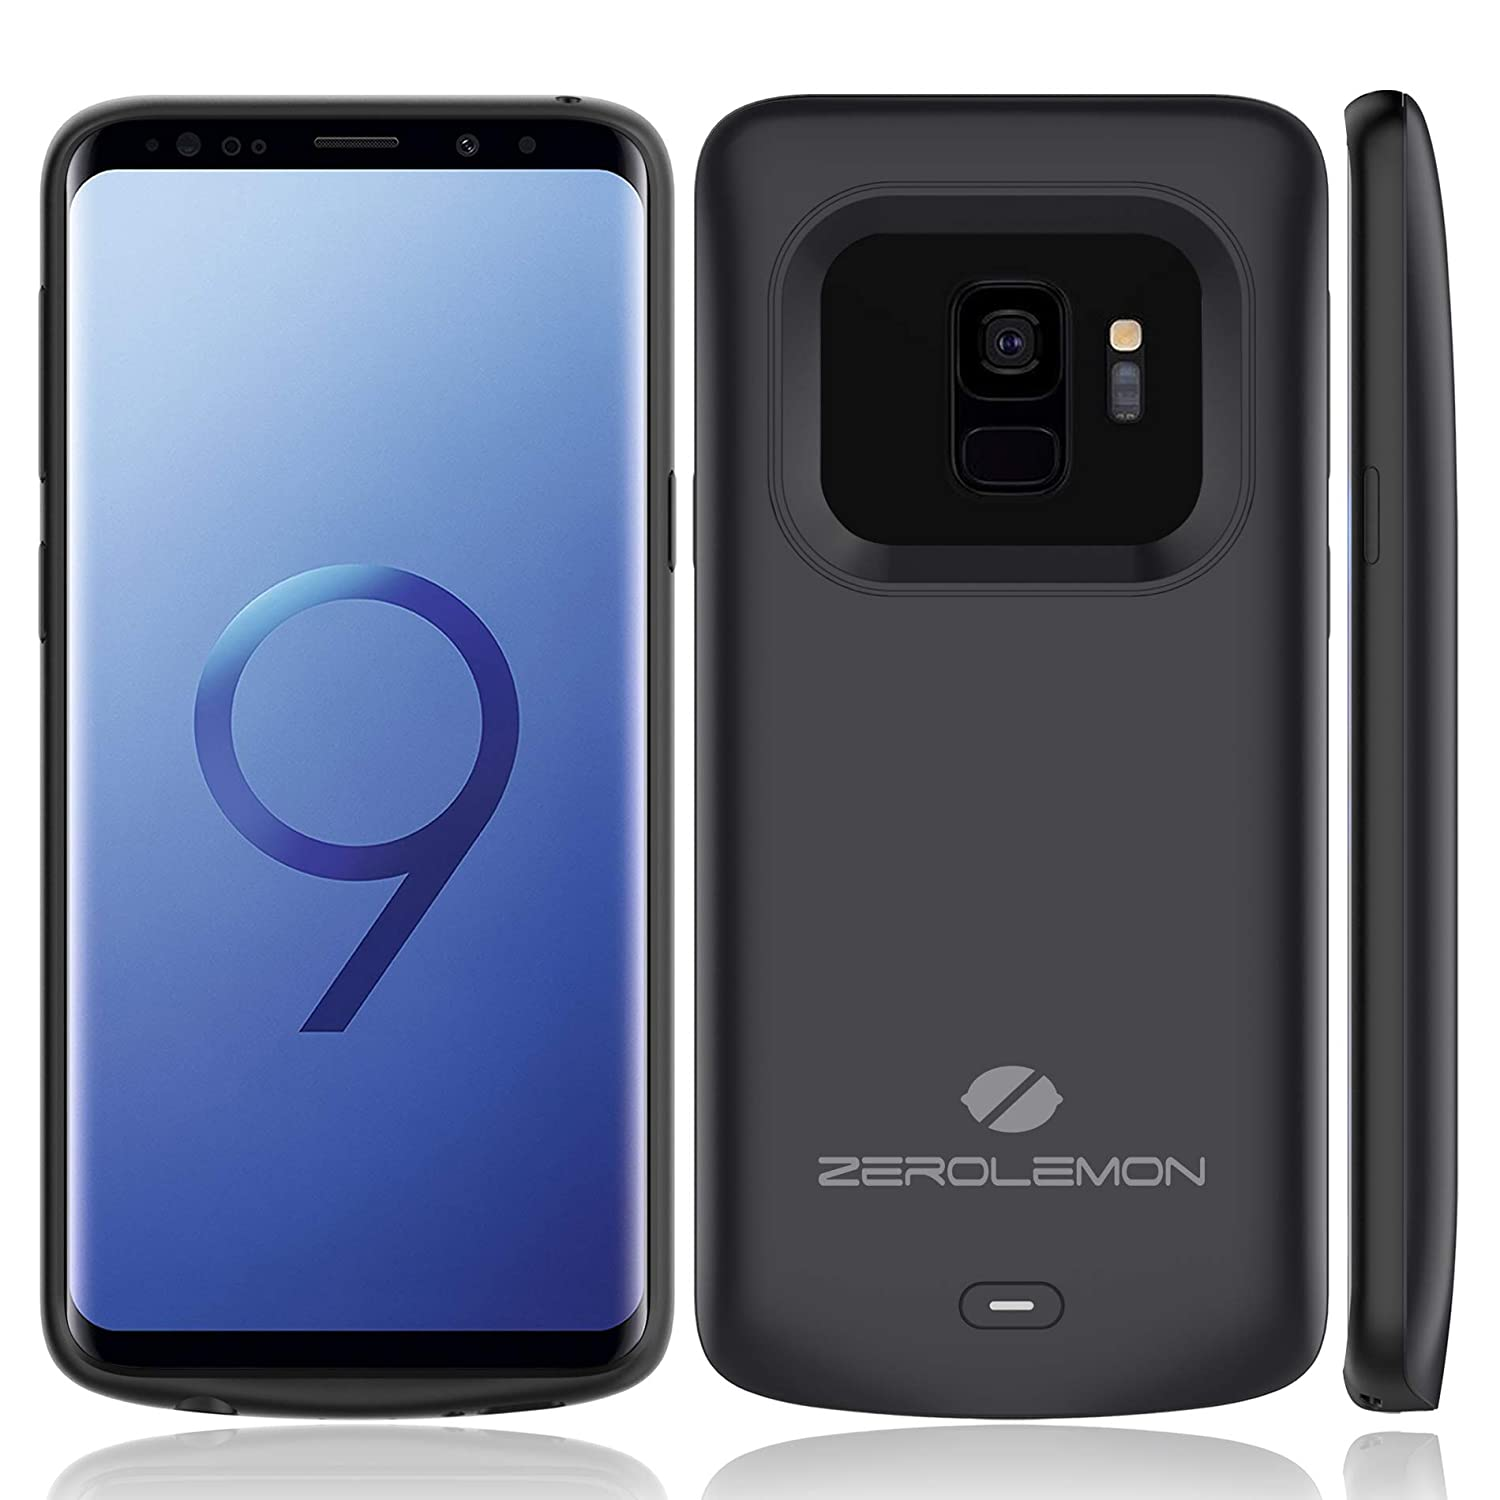 best service 65447 1c615 Galaxy S9 Battery Charging Case, ZeroLemon Slim Power 4700mAh Extended  Battery with Full Edge Protection Charging Case for Galaxy S9 - Black